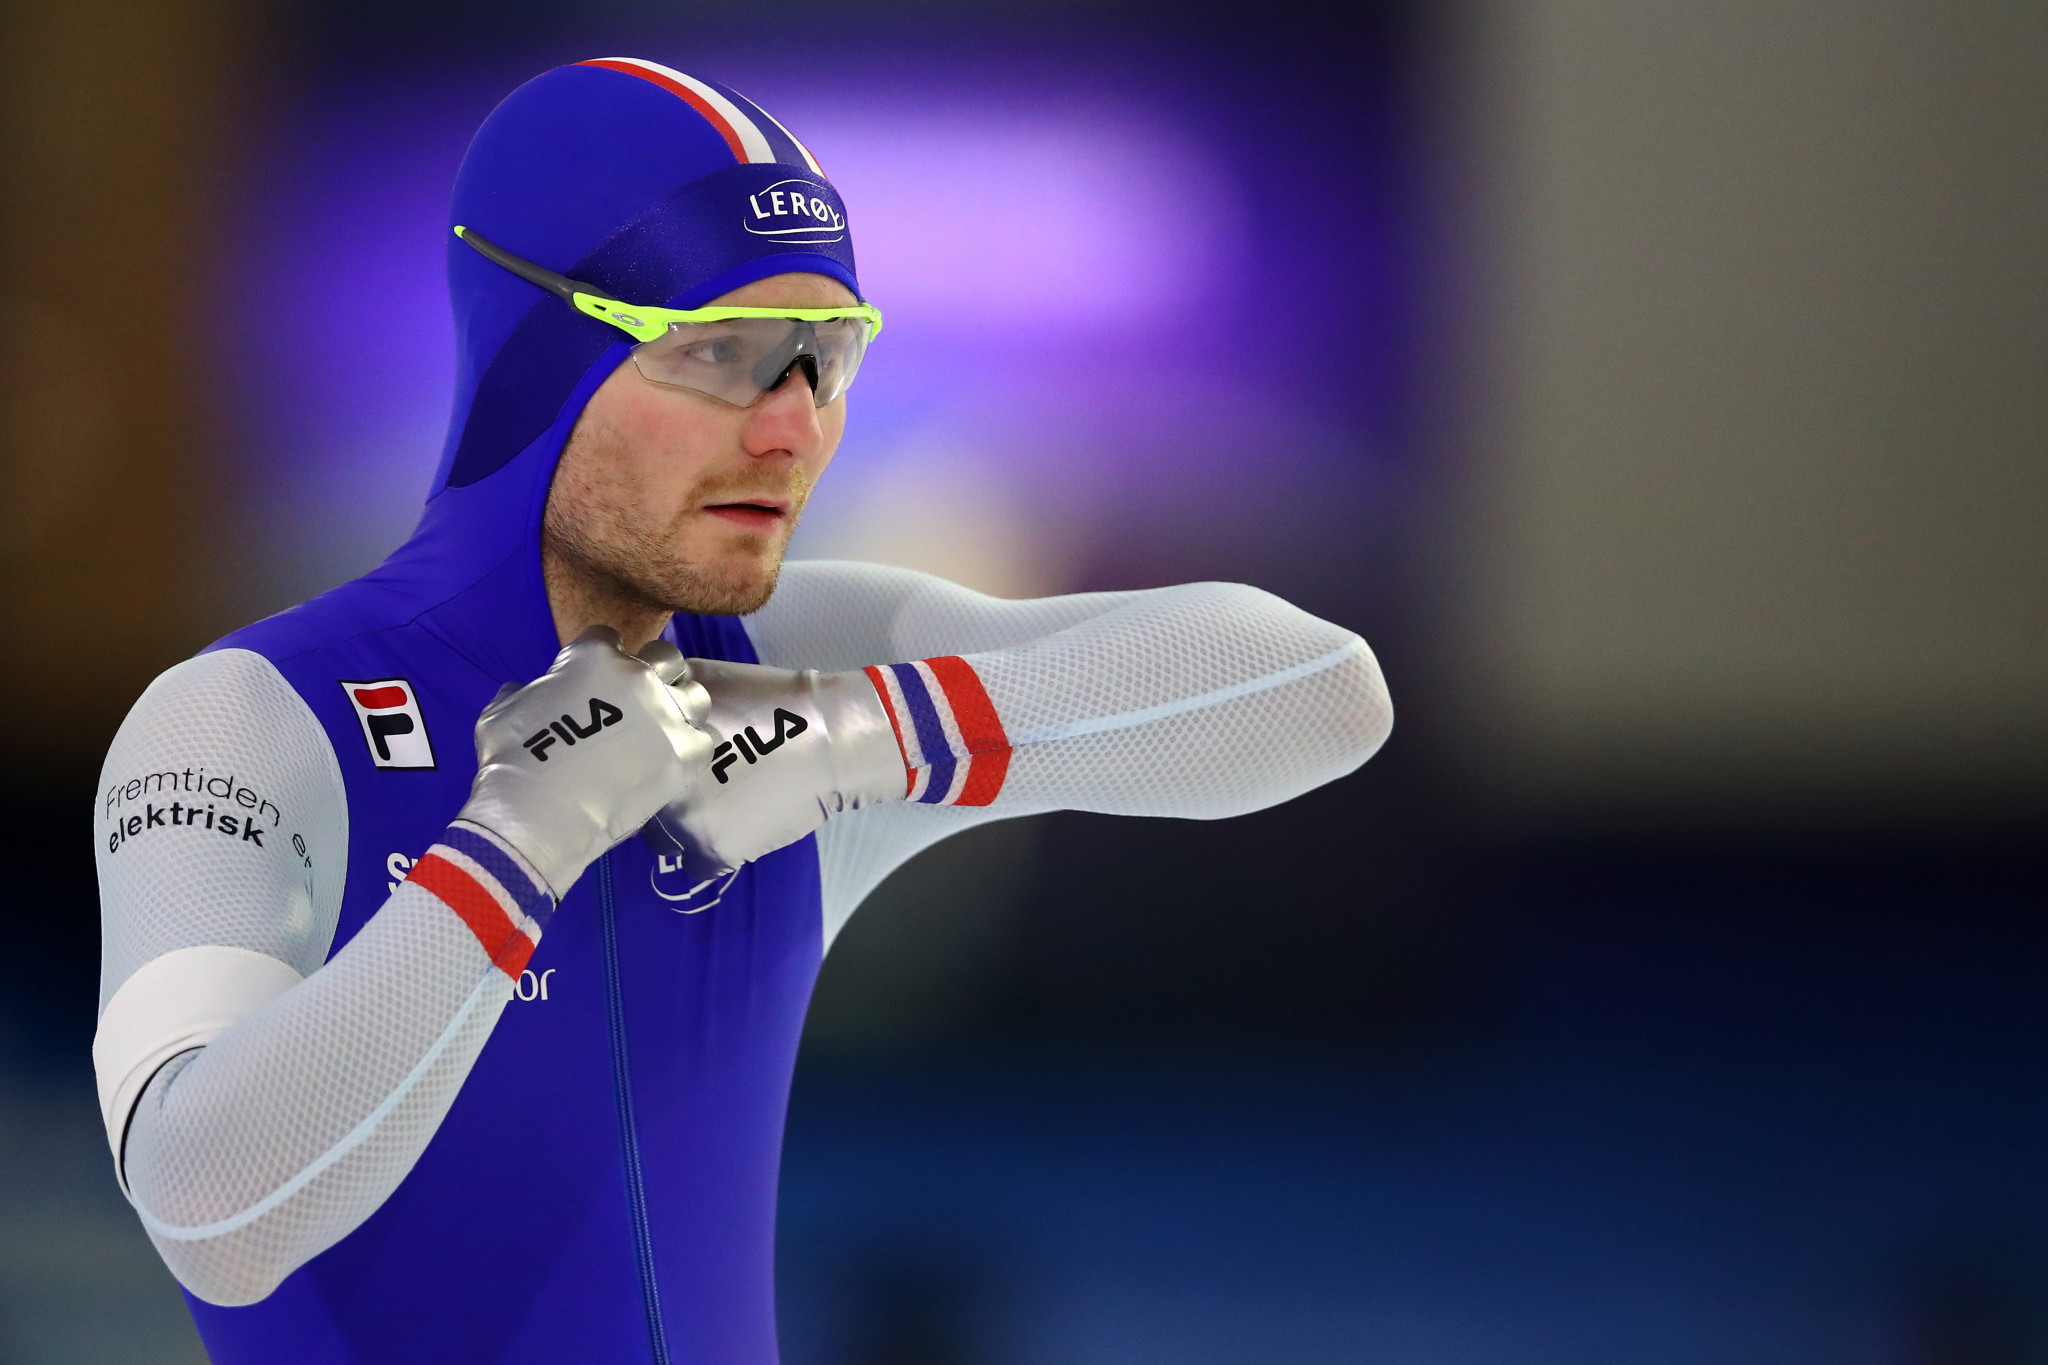 Olympic champion Pedersen undergoes surgery after injuries sustained in cycling accident